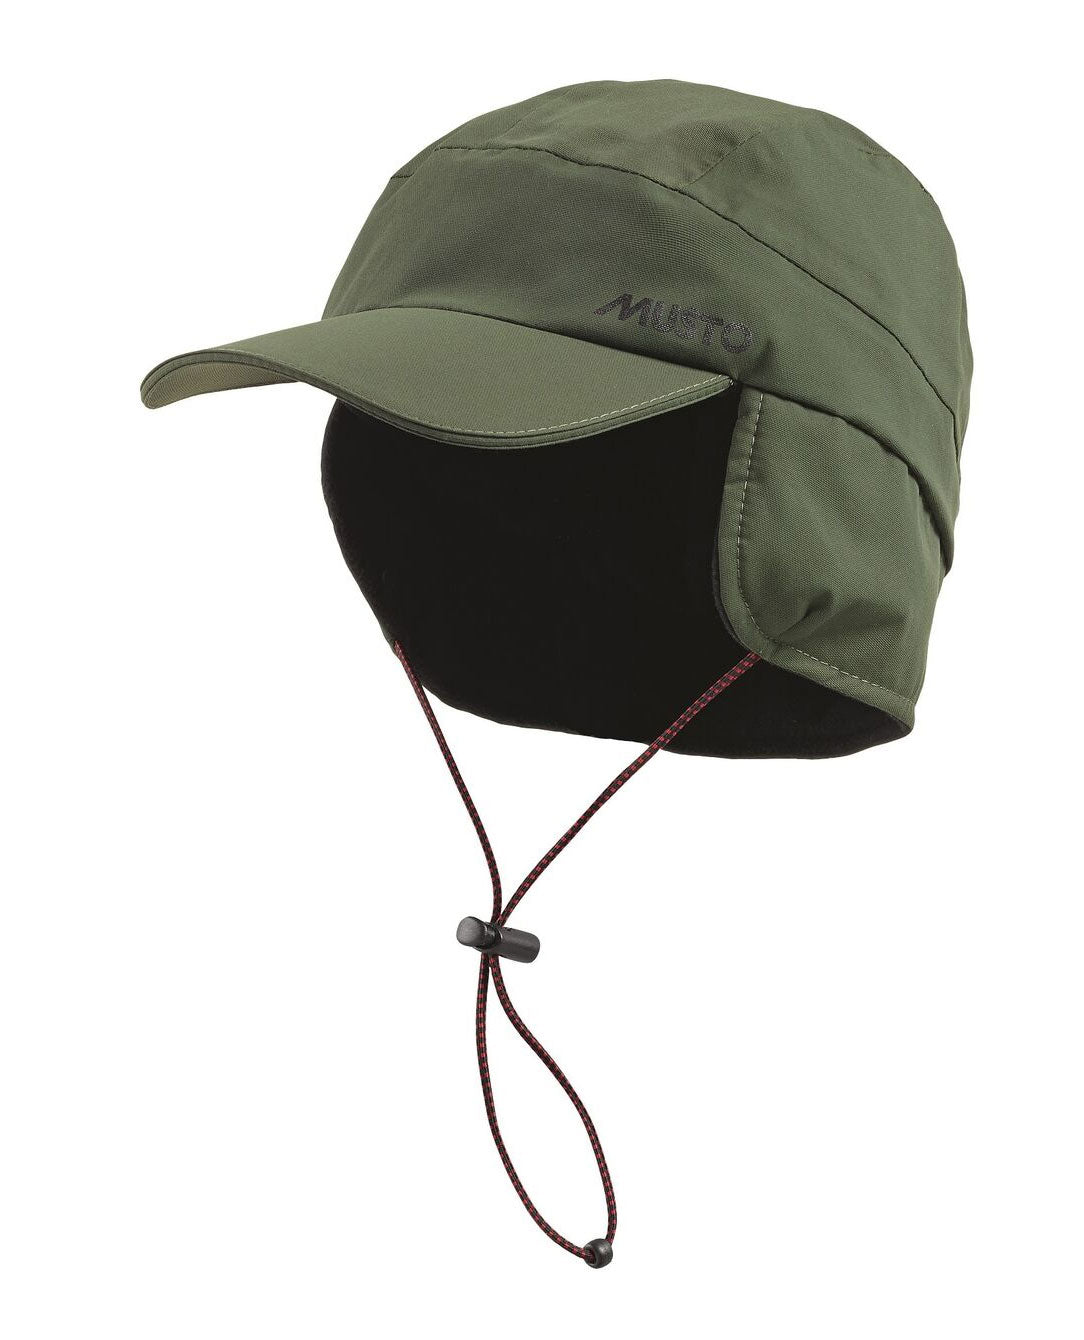 Moss Green Fleece Lined Waterproof Cap by Musto